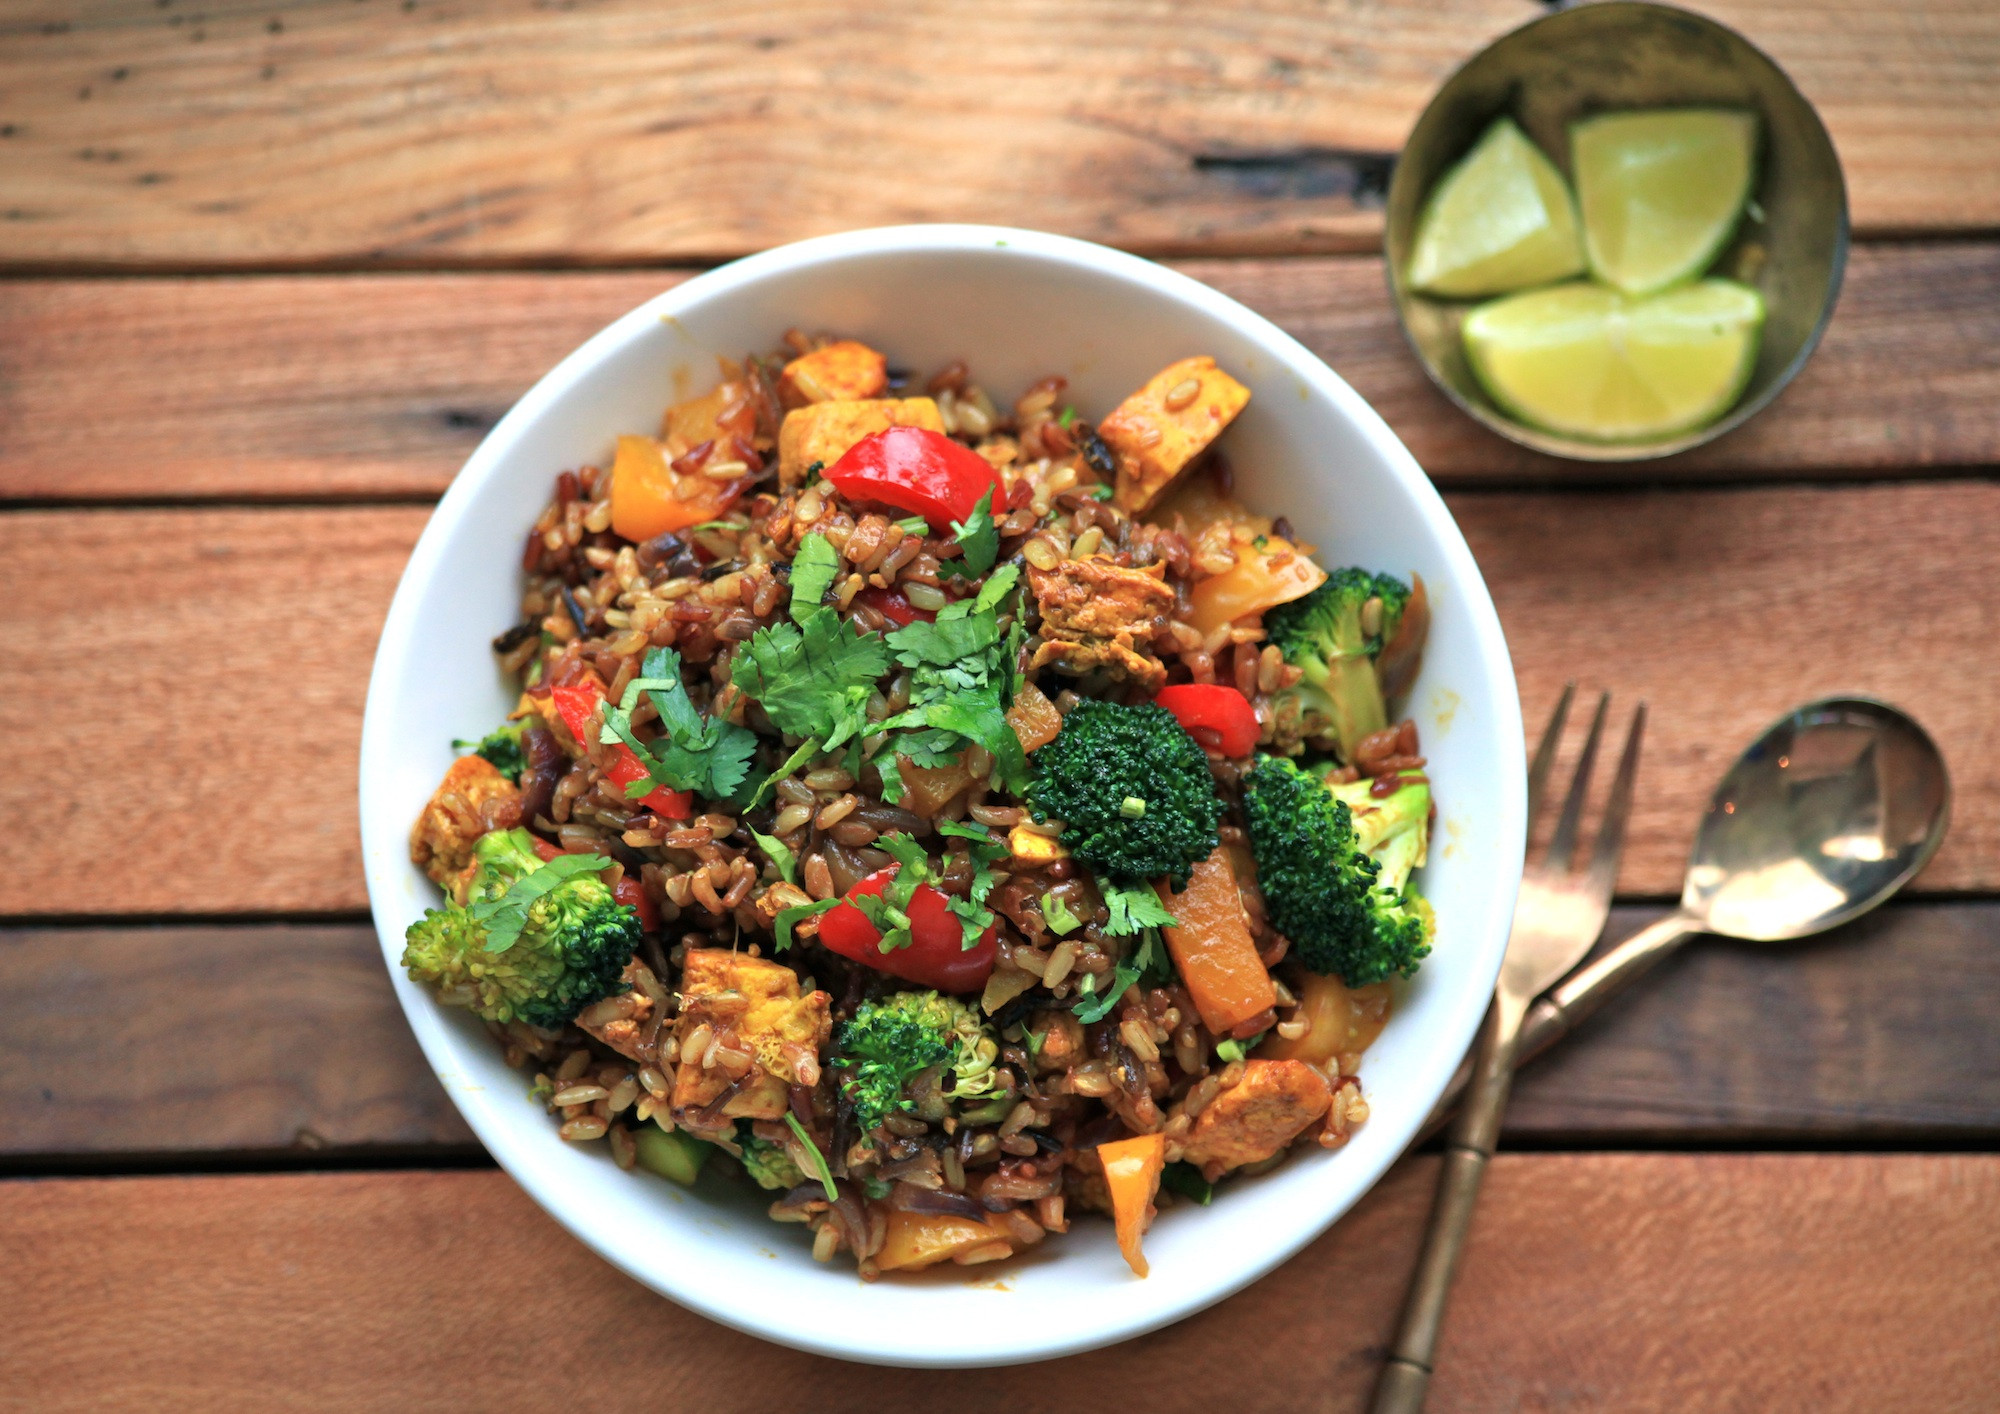 Tofu Recipes Healthy  5 healthy ve arian recipes inspired by India Healthista